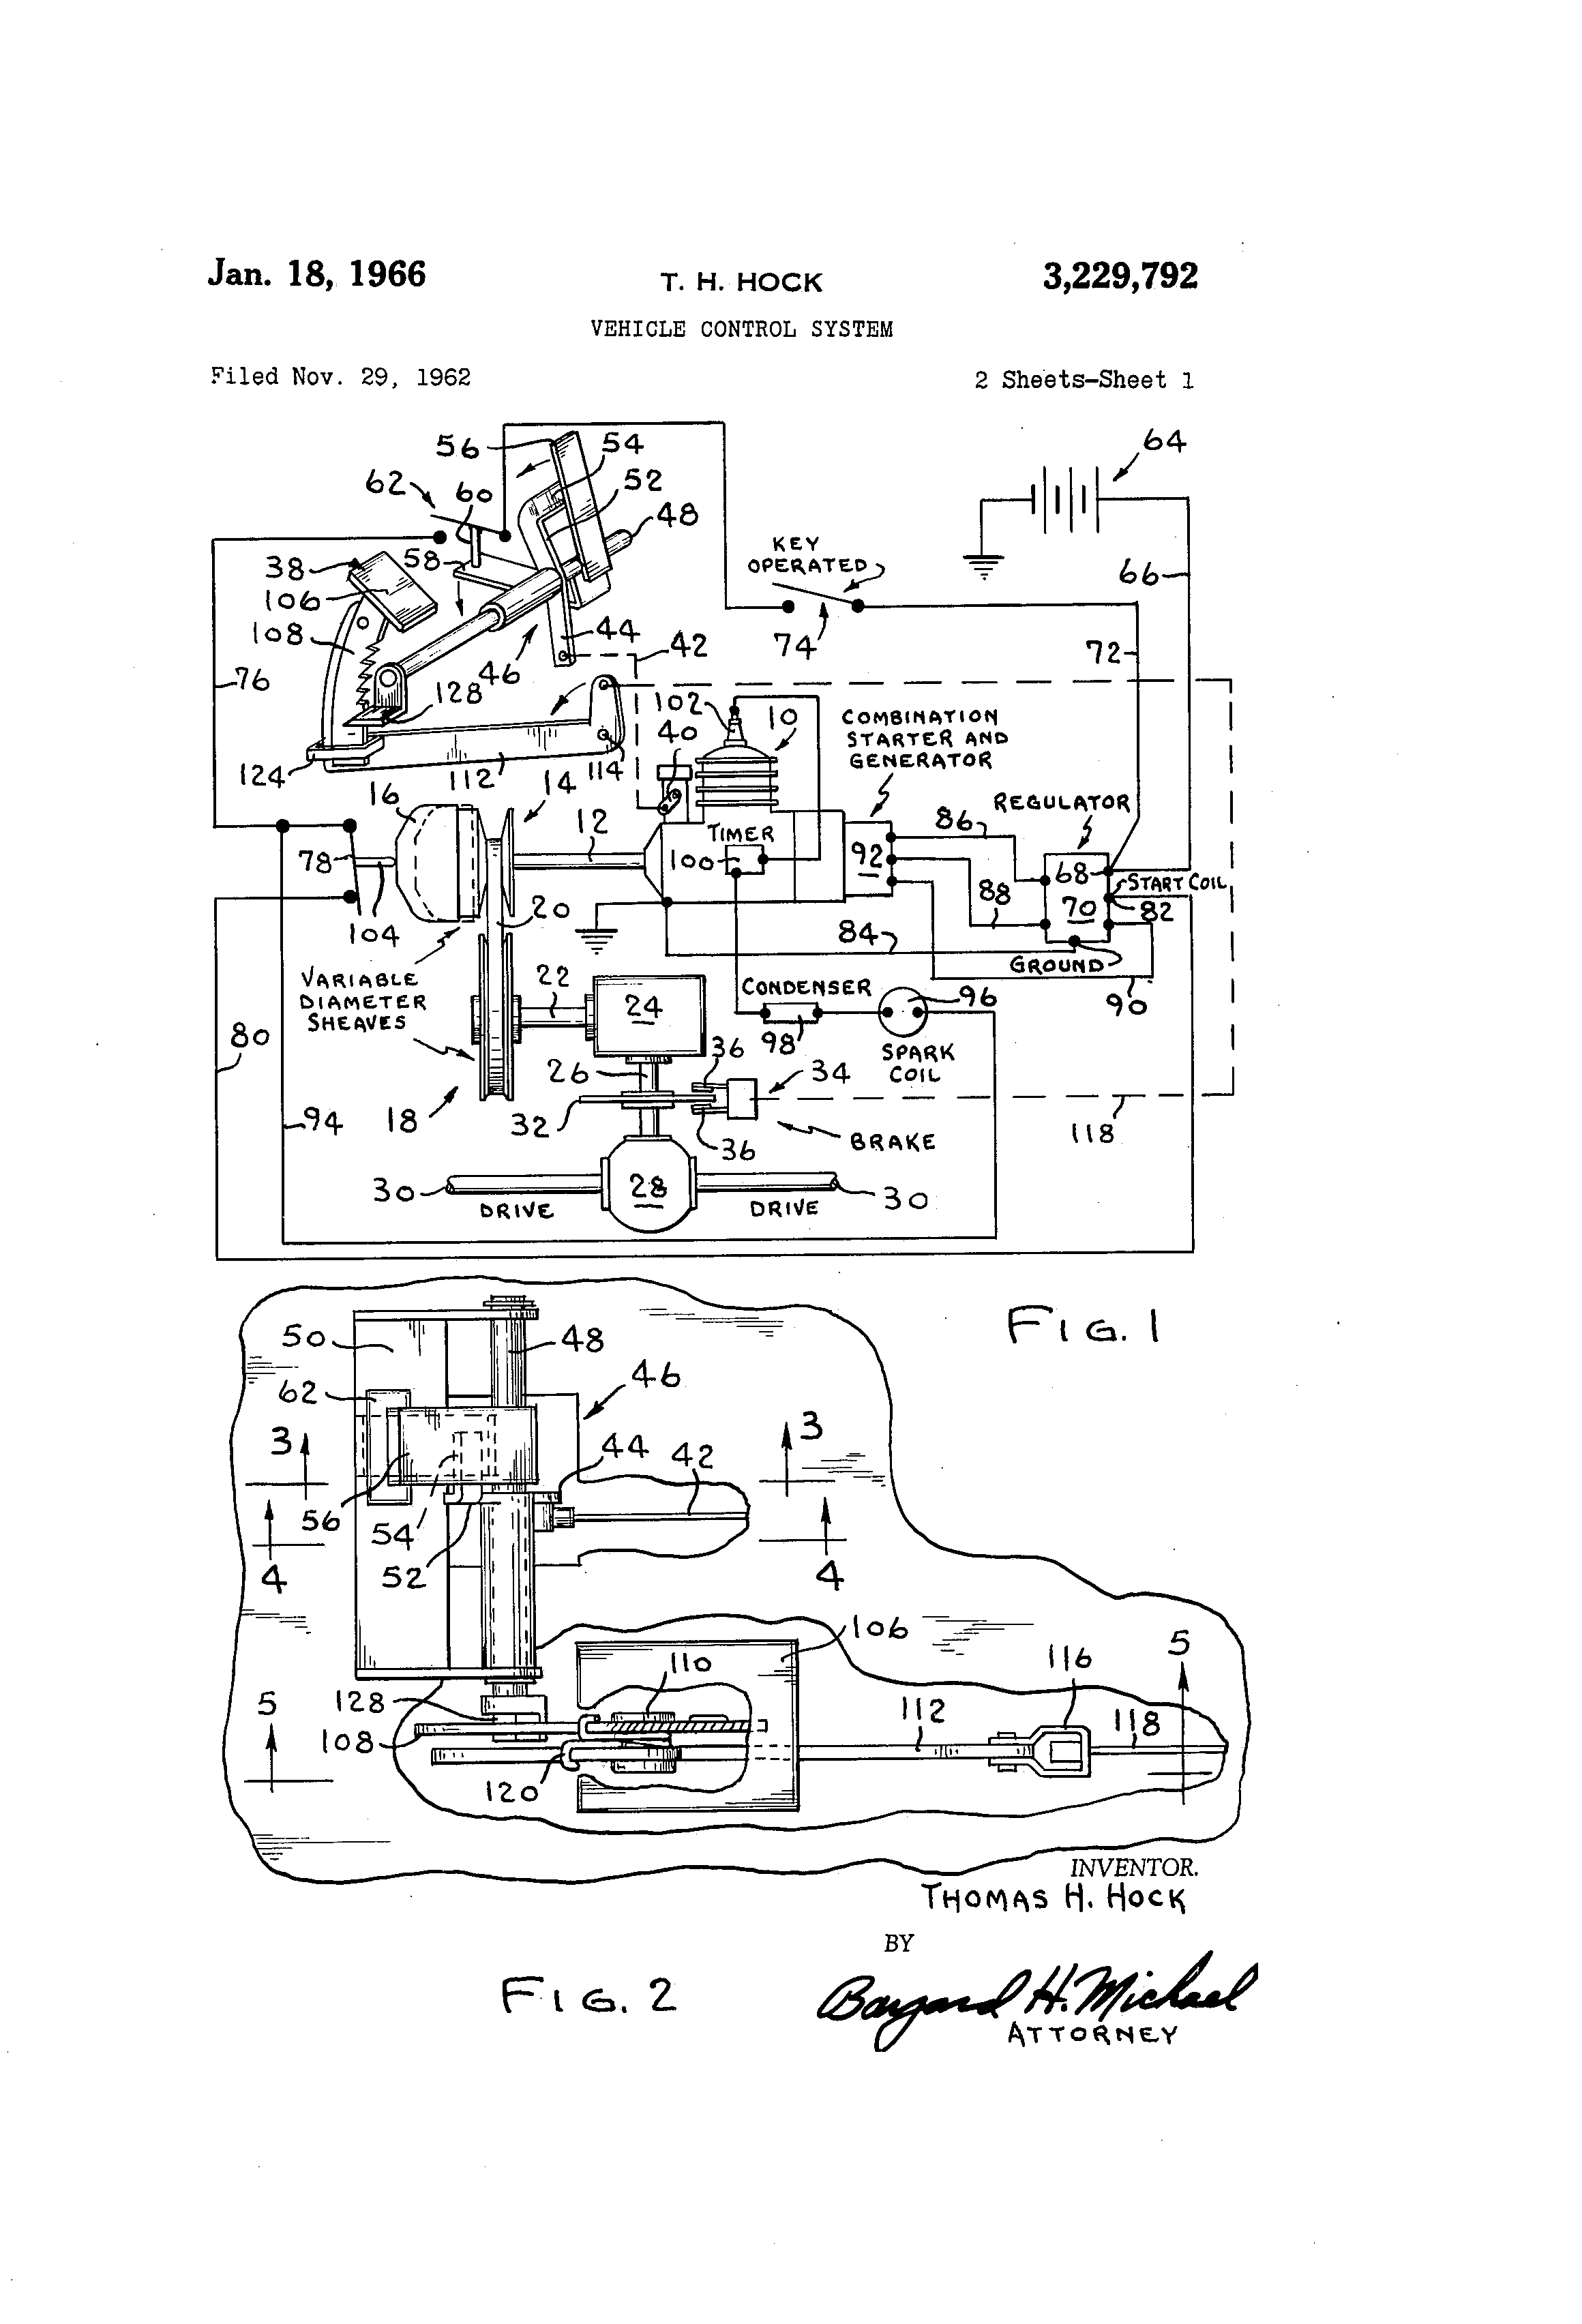 Harley-Davidson Golf Cart Wiring Diagram I Like This! | Motorcycle ...